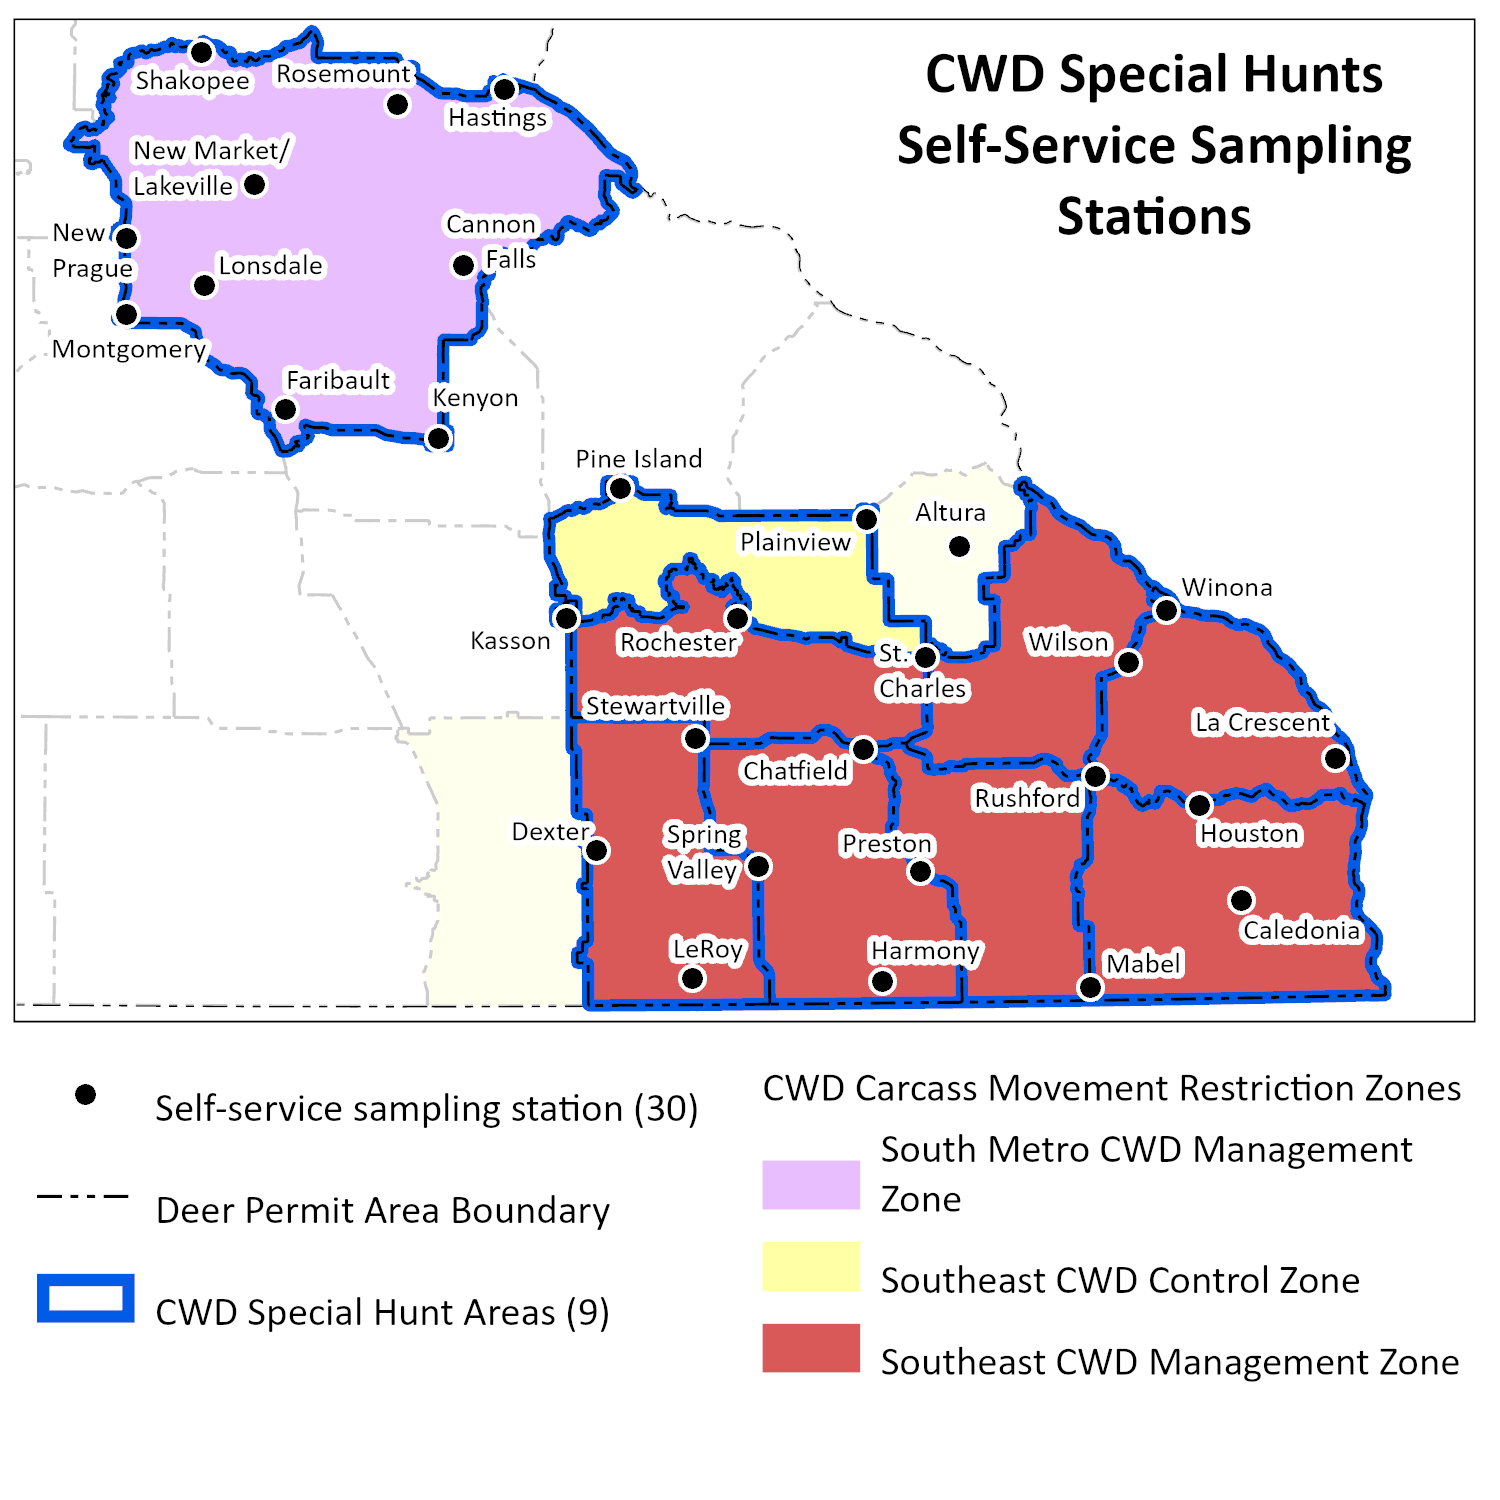 Map showing sampling station locations for 2020 special hunts.